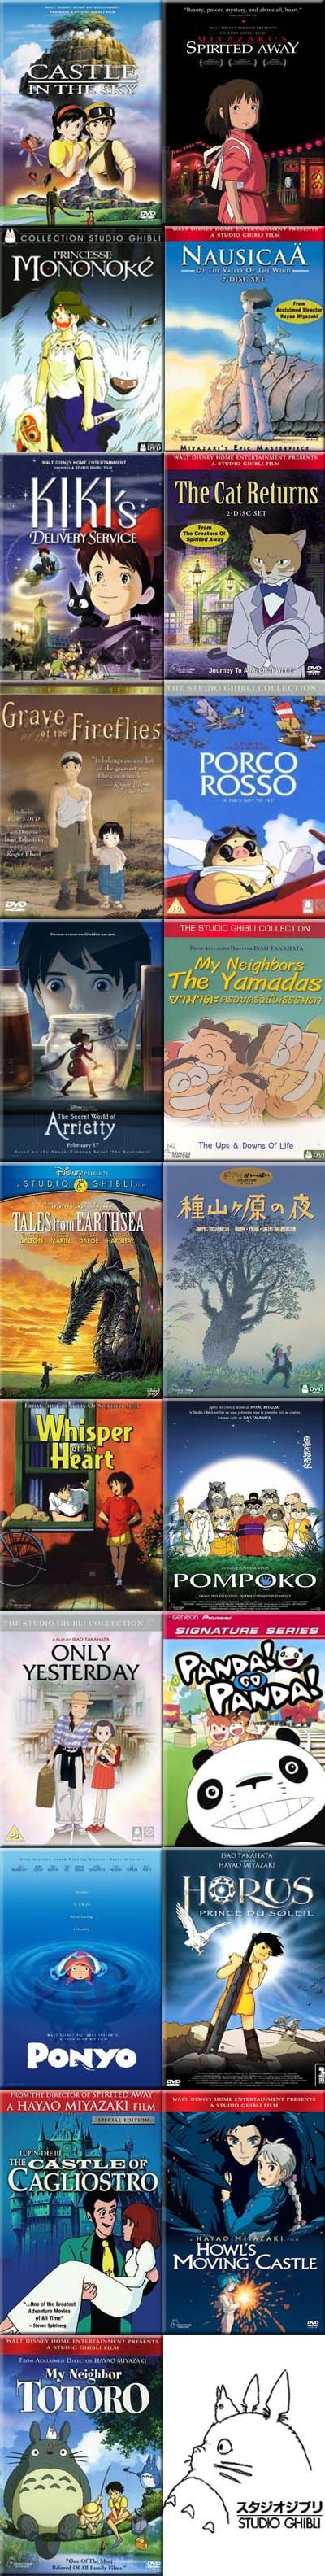 Studio Ghibli. Laputa: Castle in the Sky, Spirited Away, Princess Mononoke, Nausicaa of the Valley of the Wind, Kiki's Delivery Service, The Cat Returns, Grave of the Fireflies, Porco Rosso, The Secret World of Arrietty, My Neighbors the Yamadas, Tales from Earthsea, Night of Taneyamagahara, Whisper of the Heart, Pom Poko, Only Yesterday, Panda! Go Panda!, Ponyo on the Cliff by the sea, Horus: Prince of the Sun, Lupin III: Castle of Cagliostro, Howl's Moving Castle, My Neighbor Totoro.